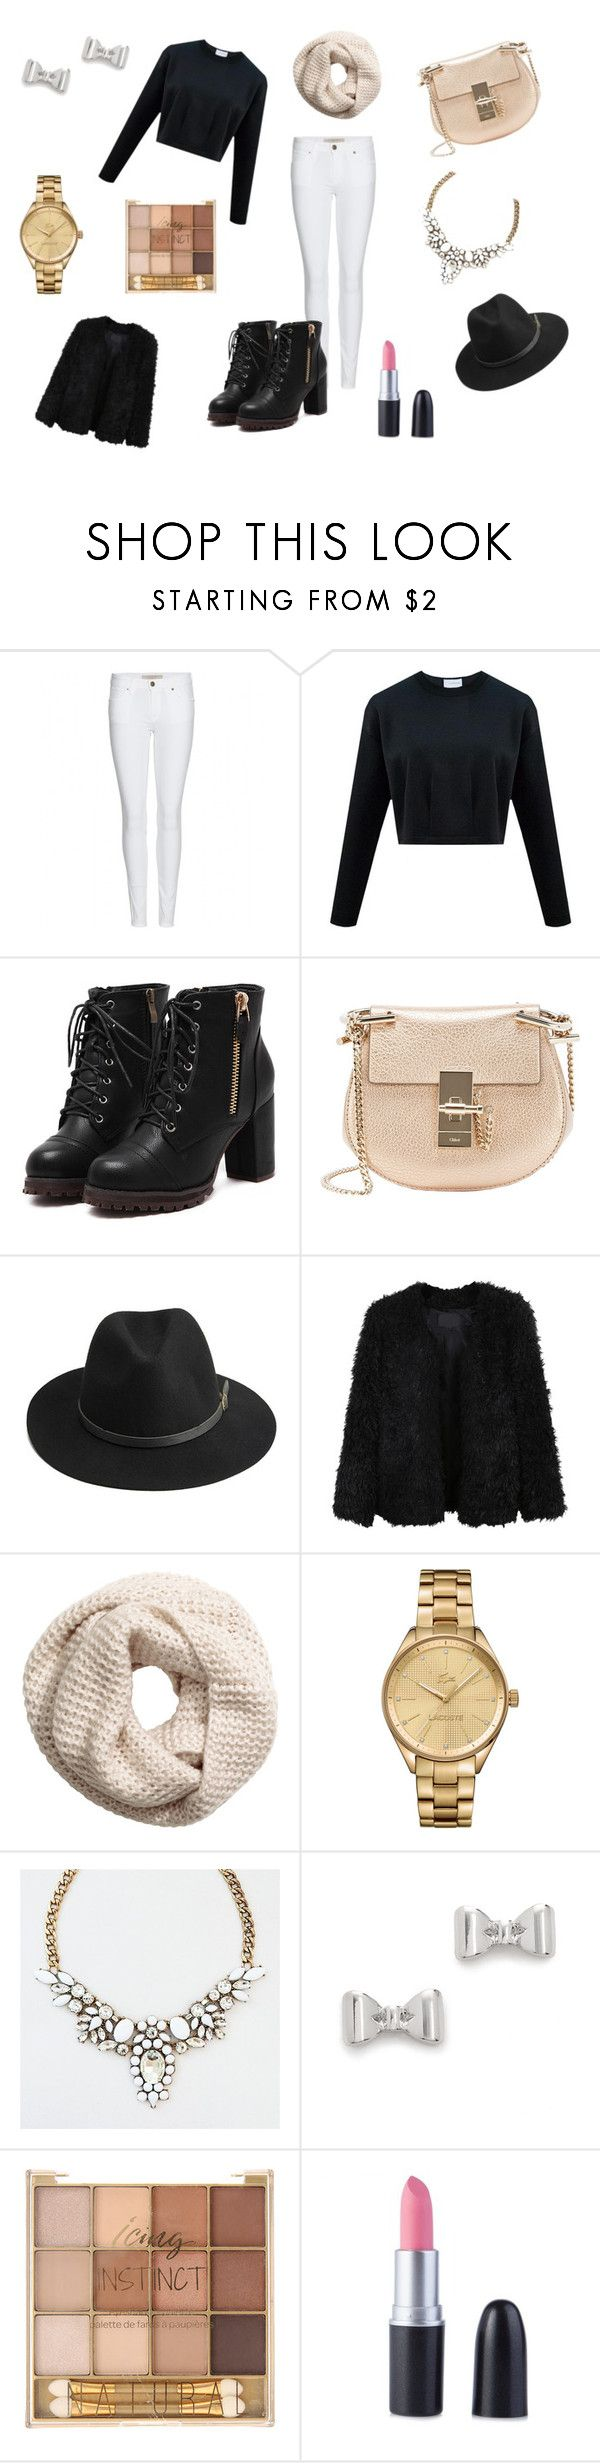 """louly live"" by dagusia112 on Polyvore featuring moda, Burberry, Chloé, BeckSöndergaard, LE3NO, H&M, Lacoste i Marc by Marc Jacobs"